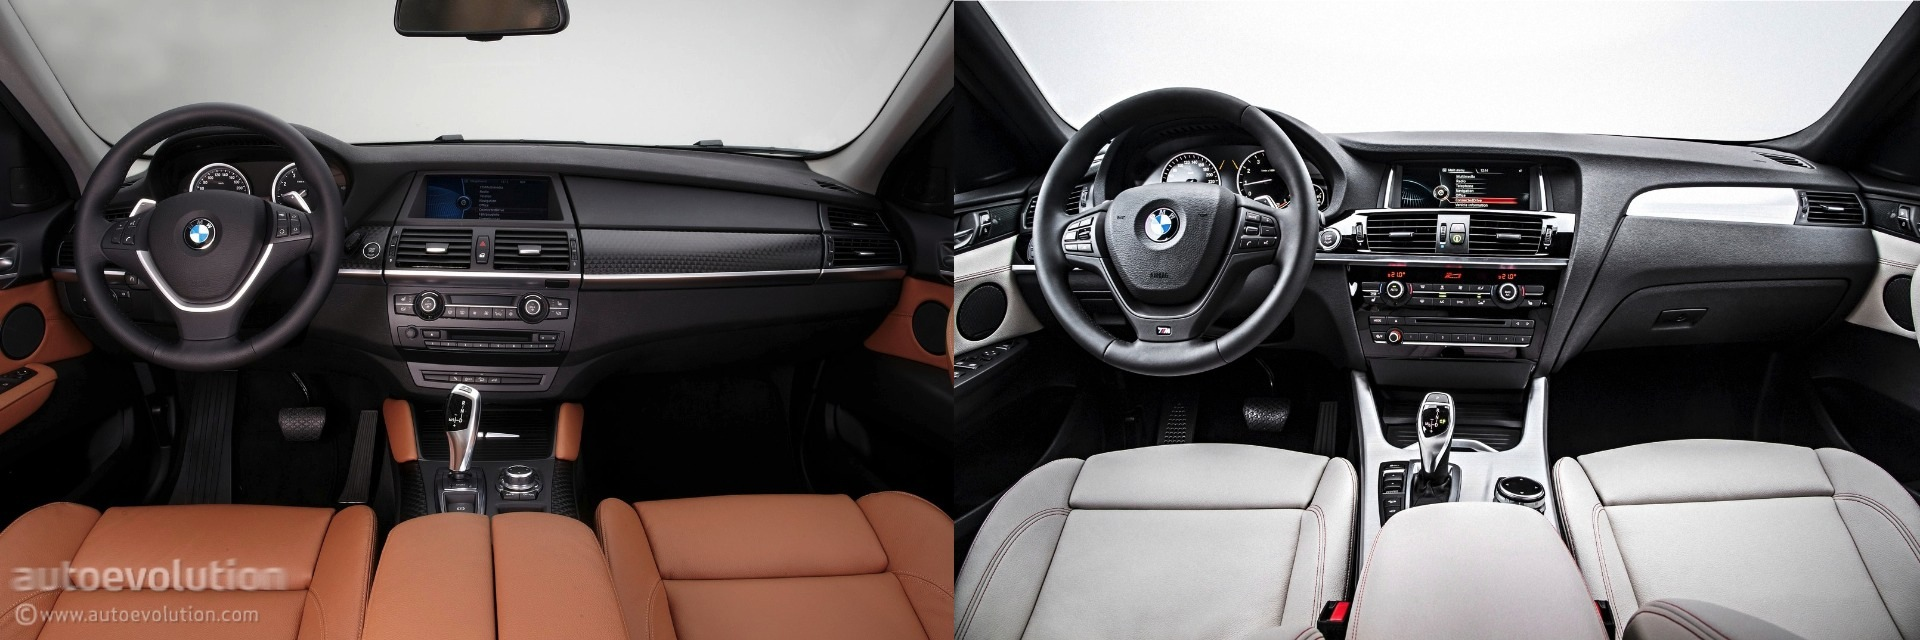 Photo Comparison Bmw F26 X4 Vs Bmw E71 X6 Autoevolution